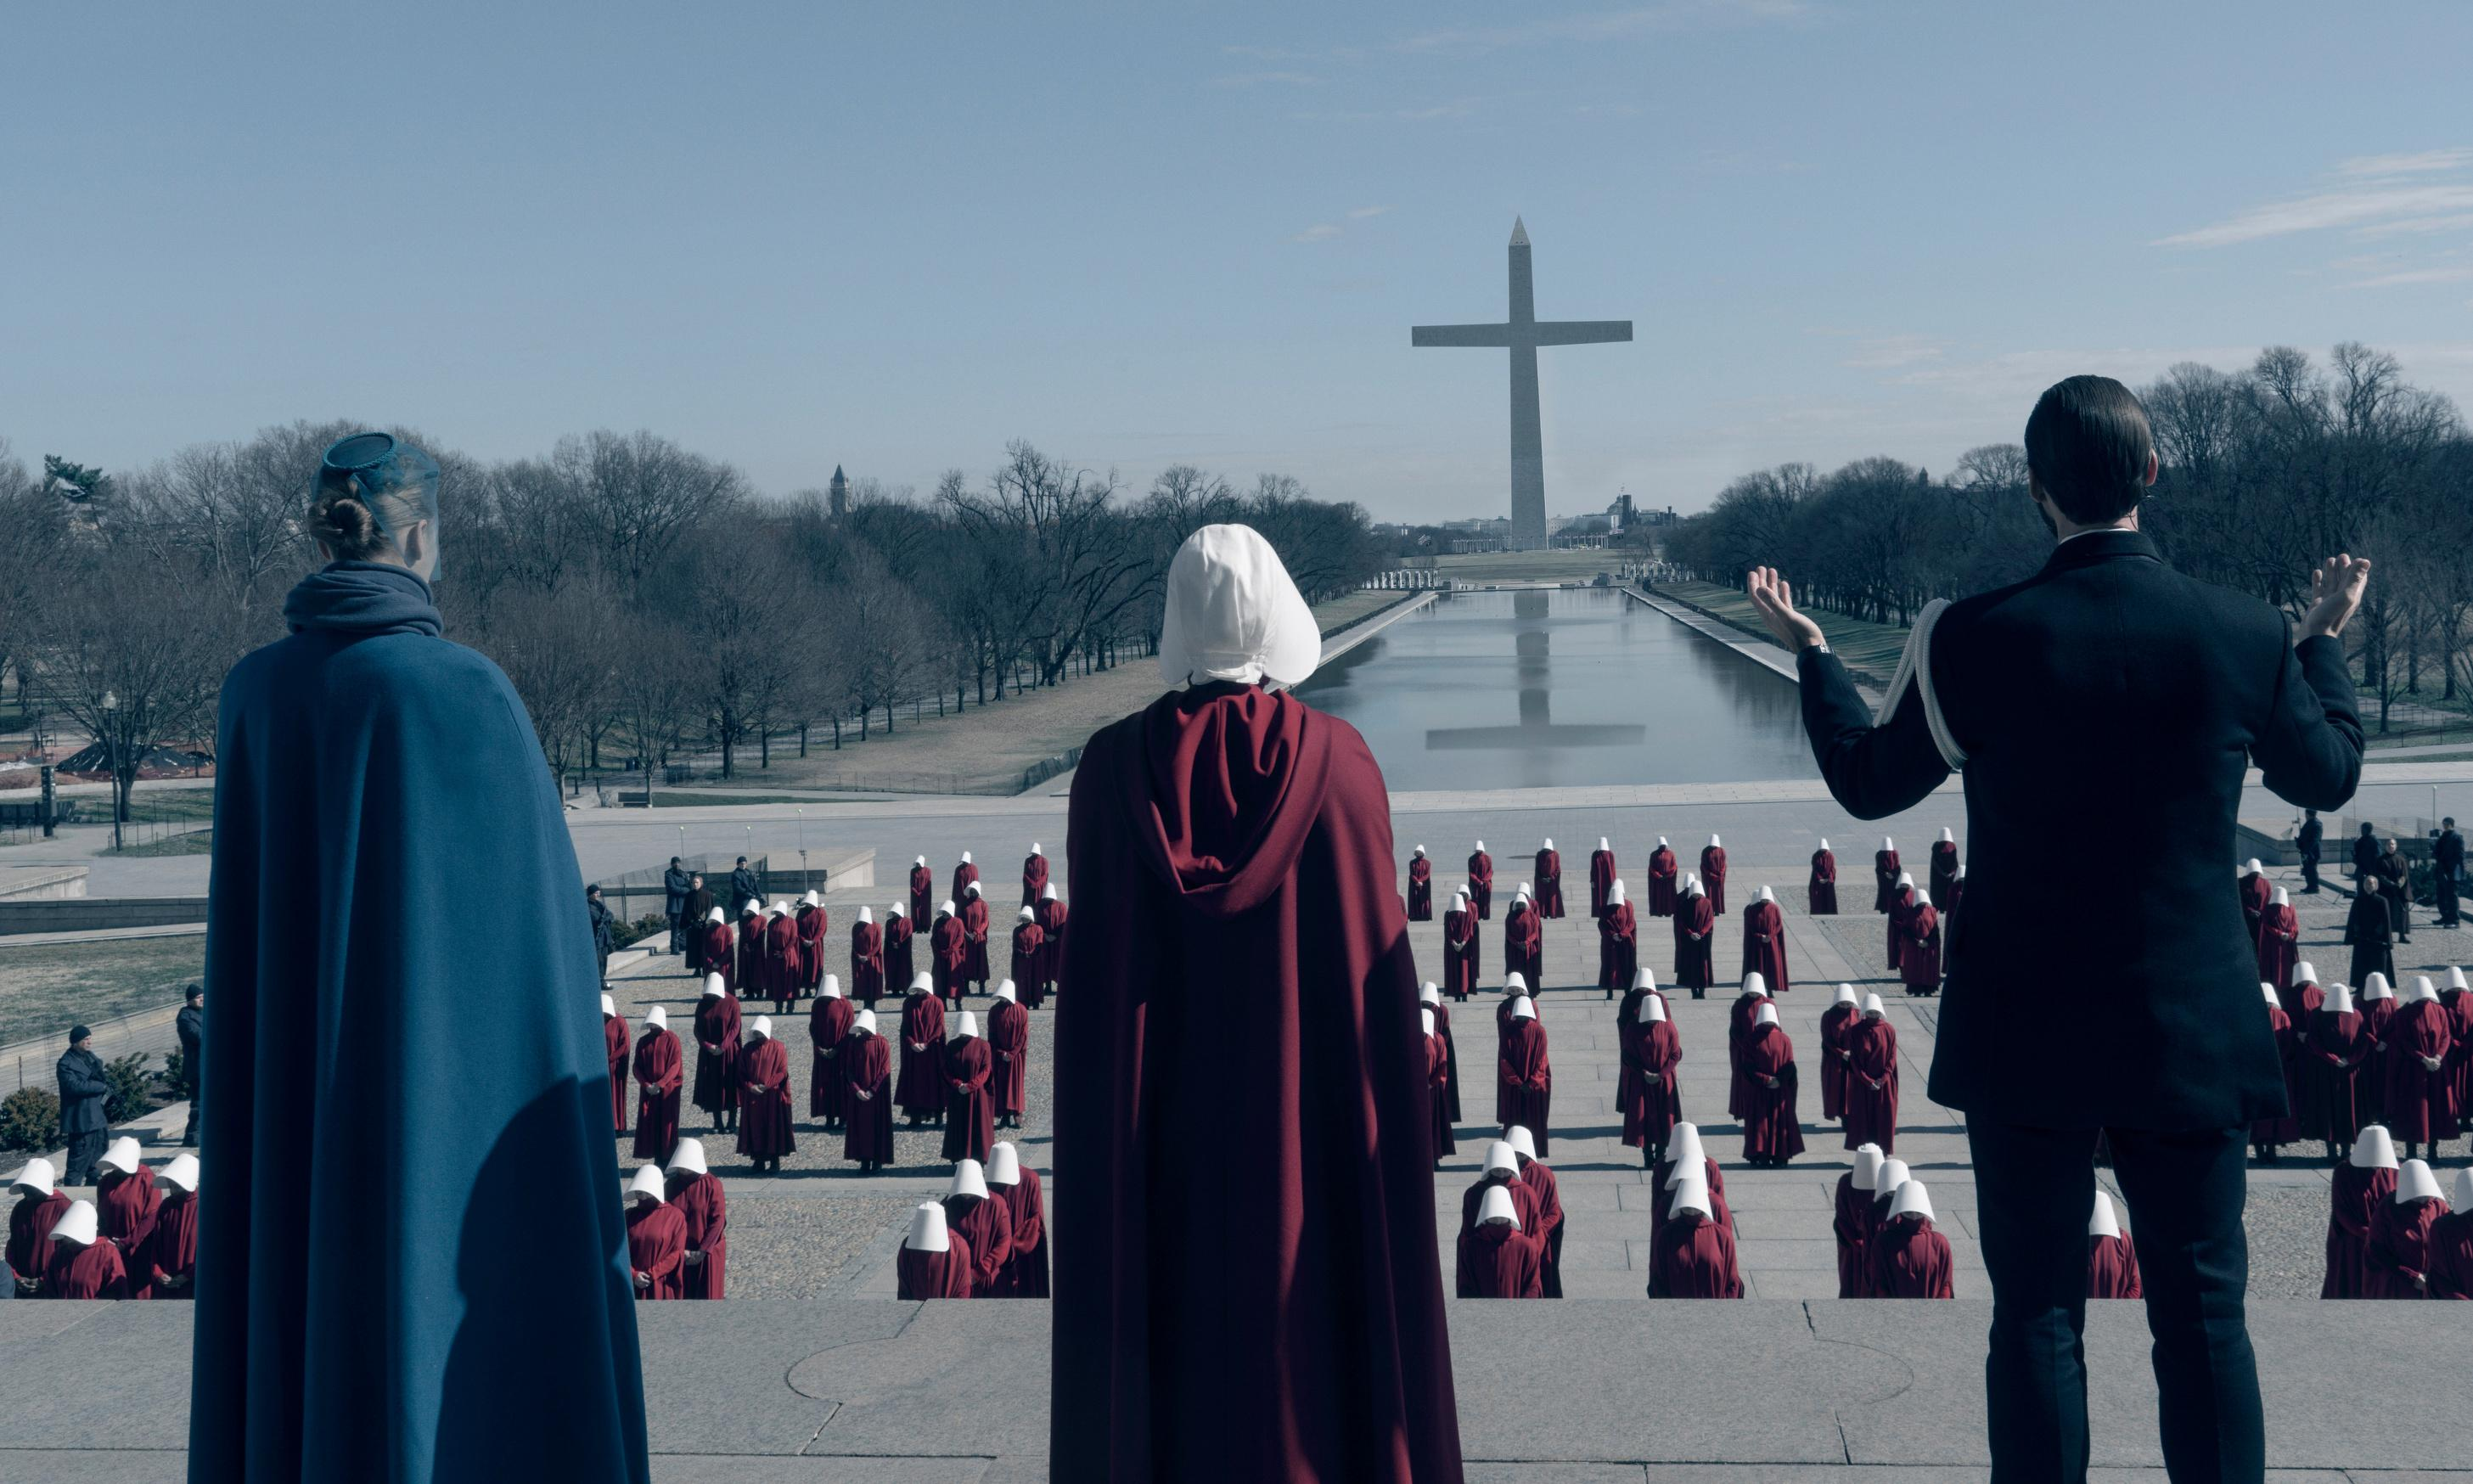 'Things could get so much worse': inside the Handmaid's Tale's darkest season yet